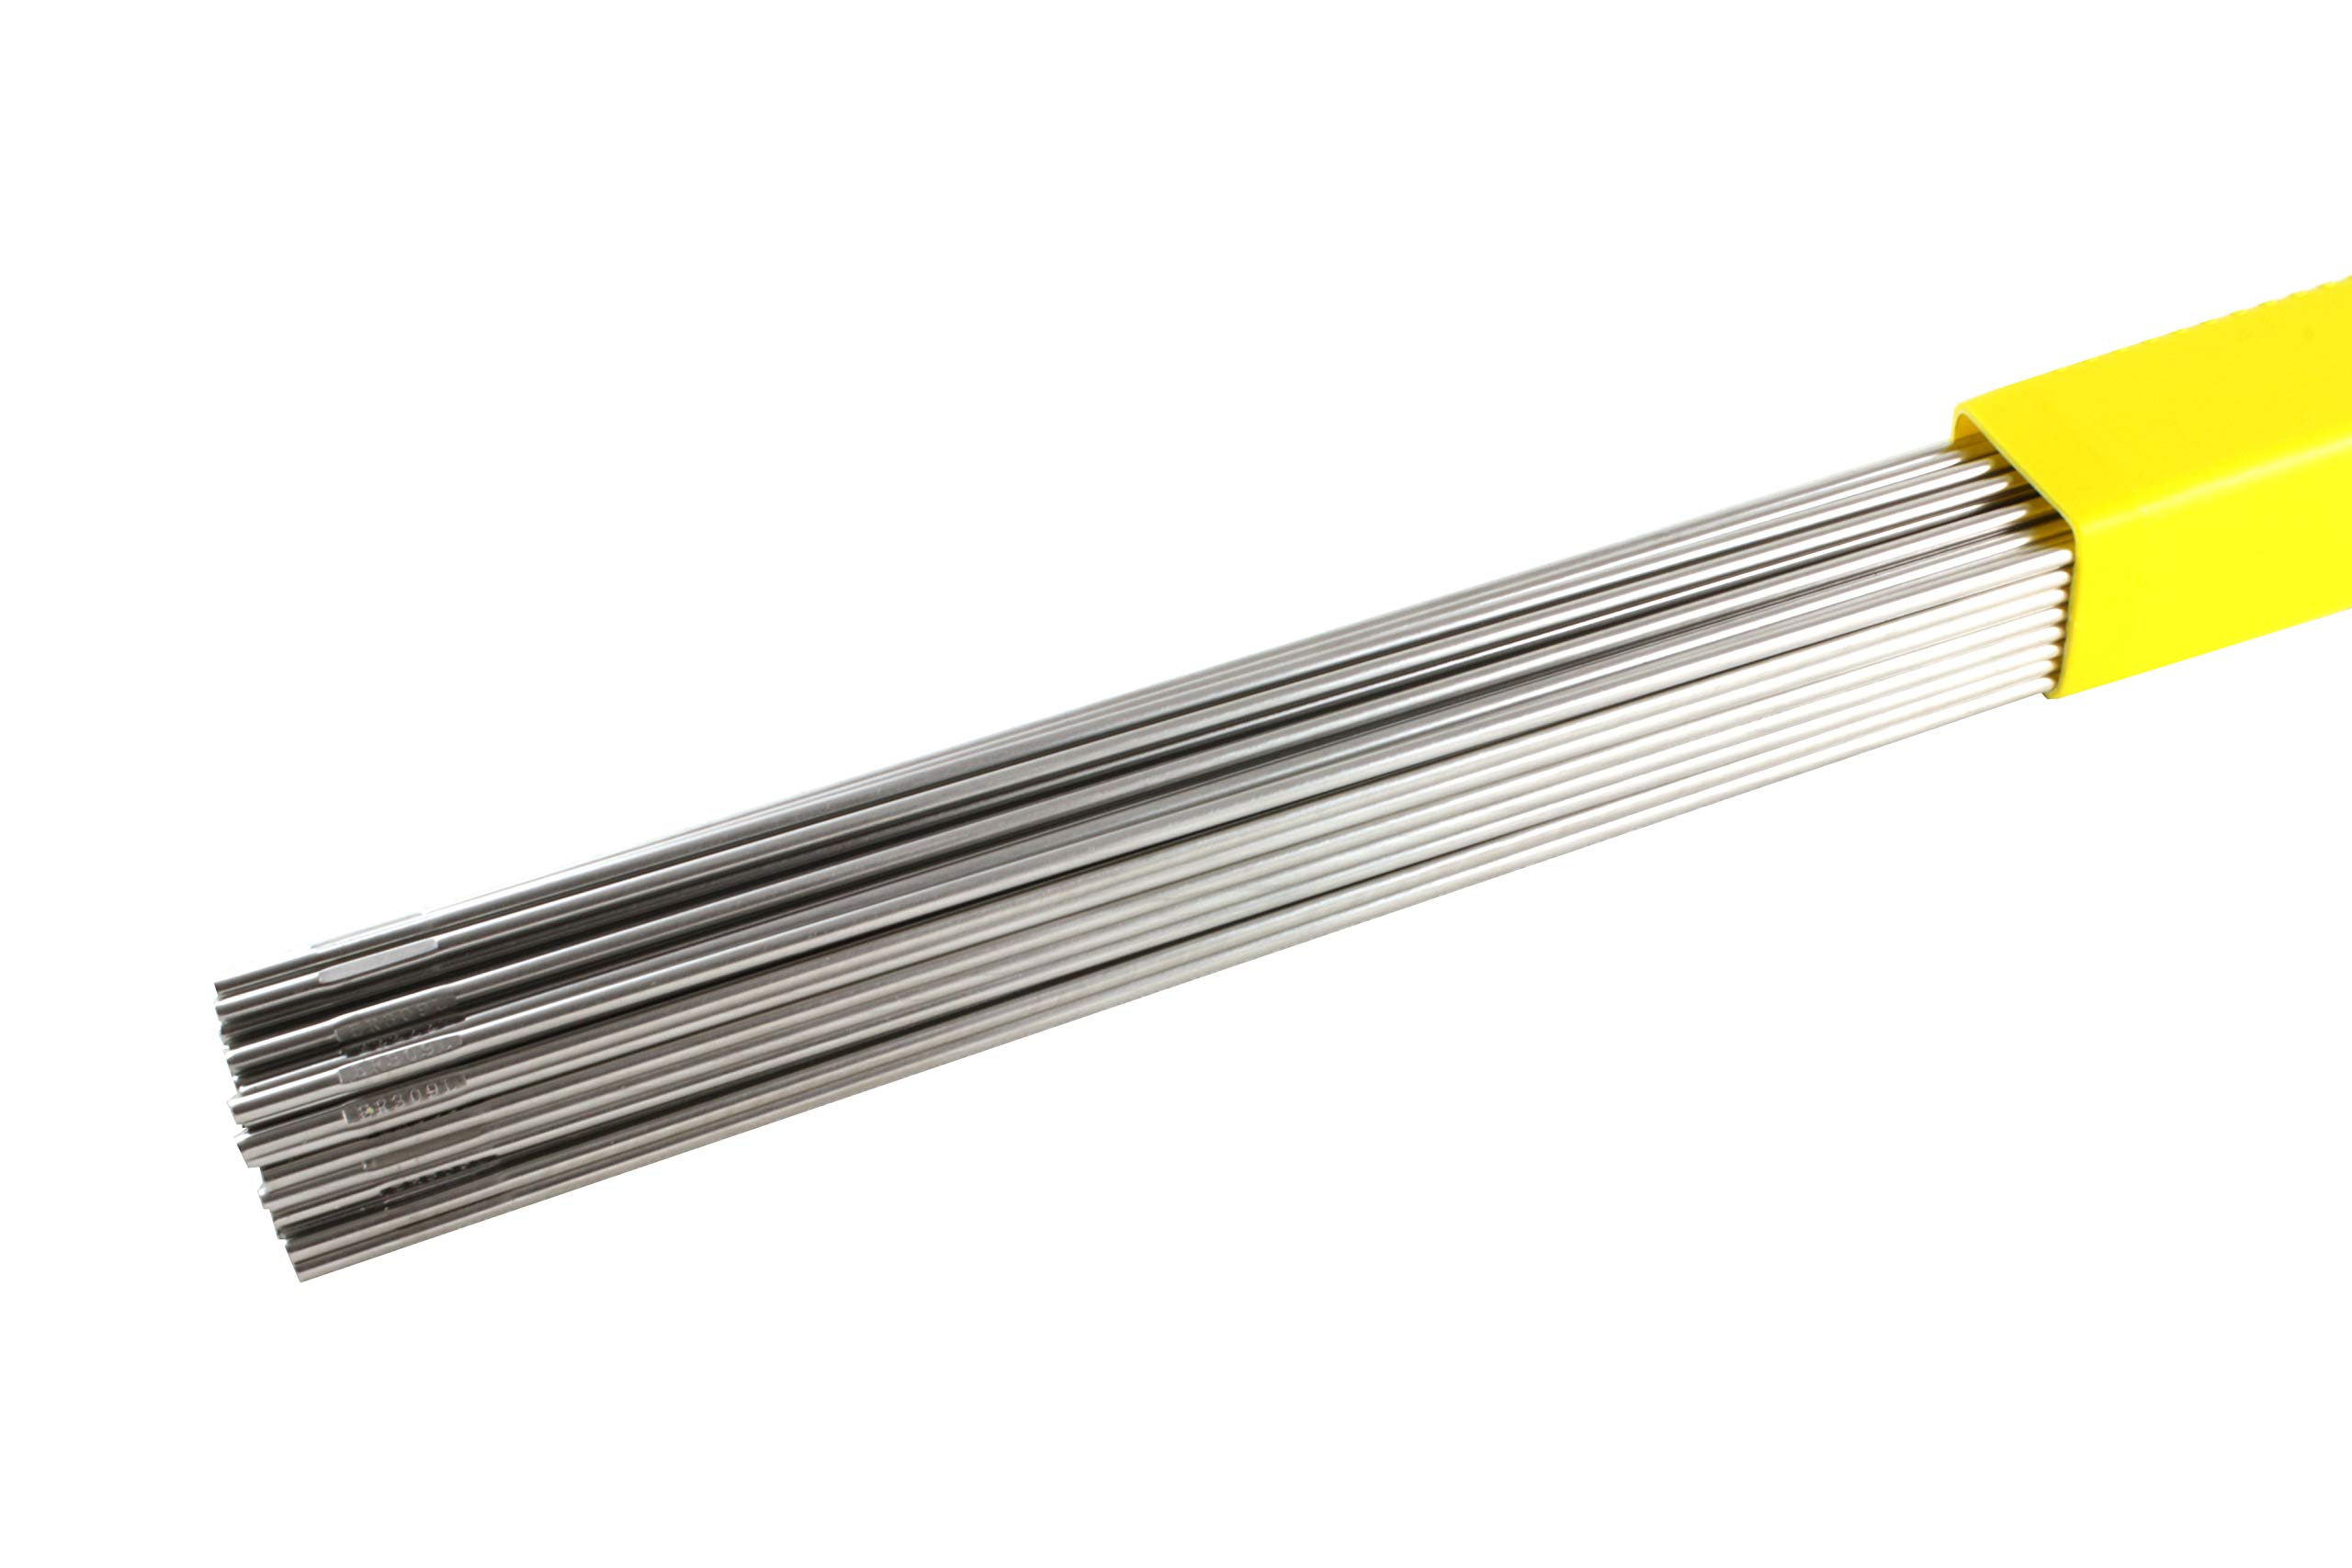 ER309L - TIG Stainless Steel Welding Rod - 36'' x 1/8'' (1 LB) by TGB (Image #2)